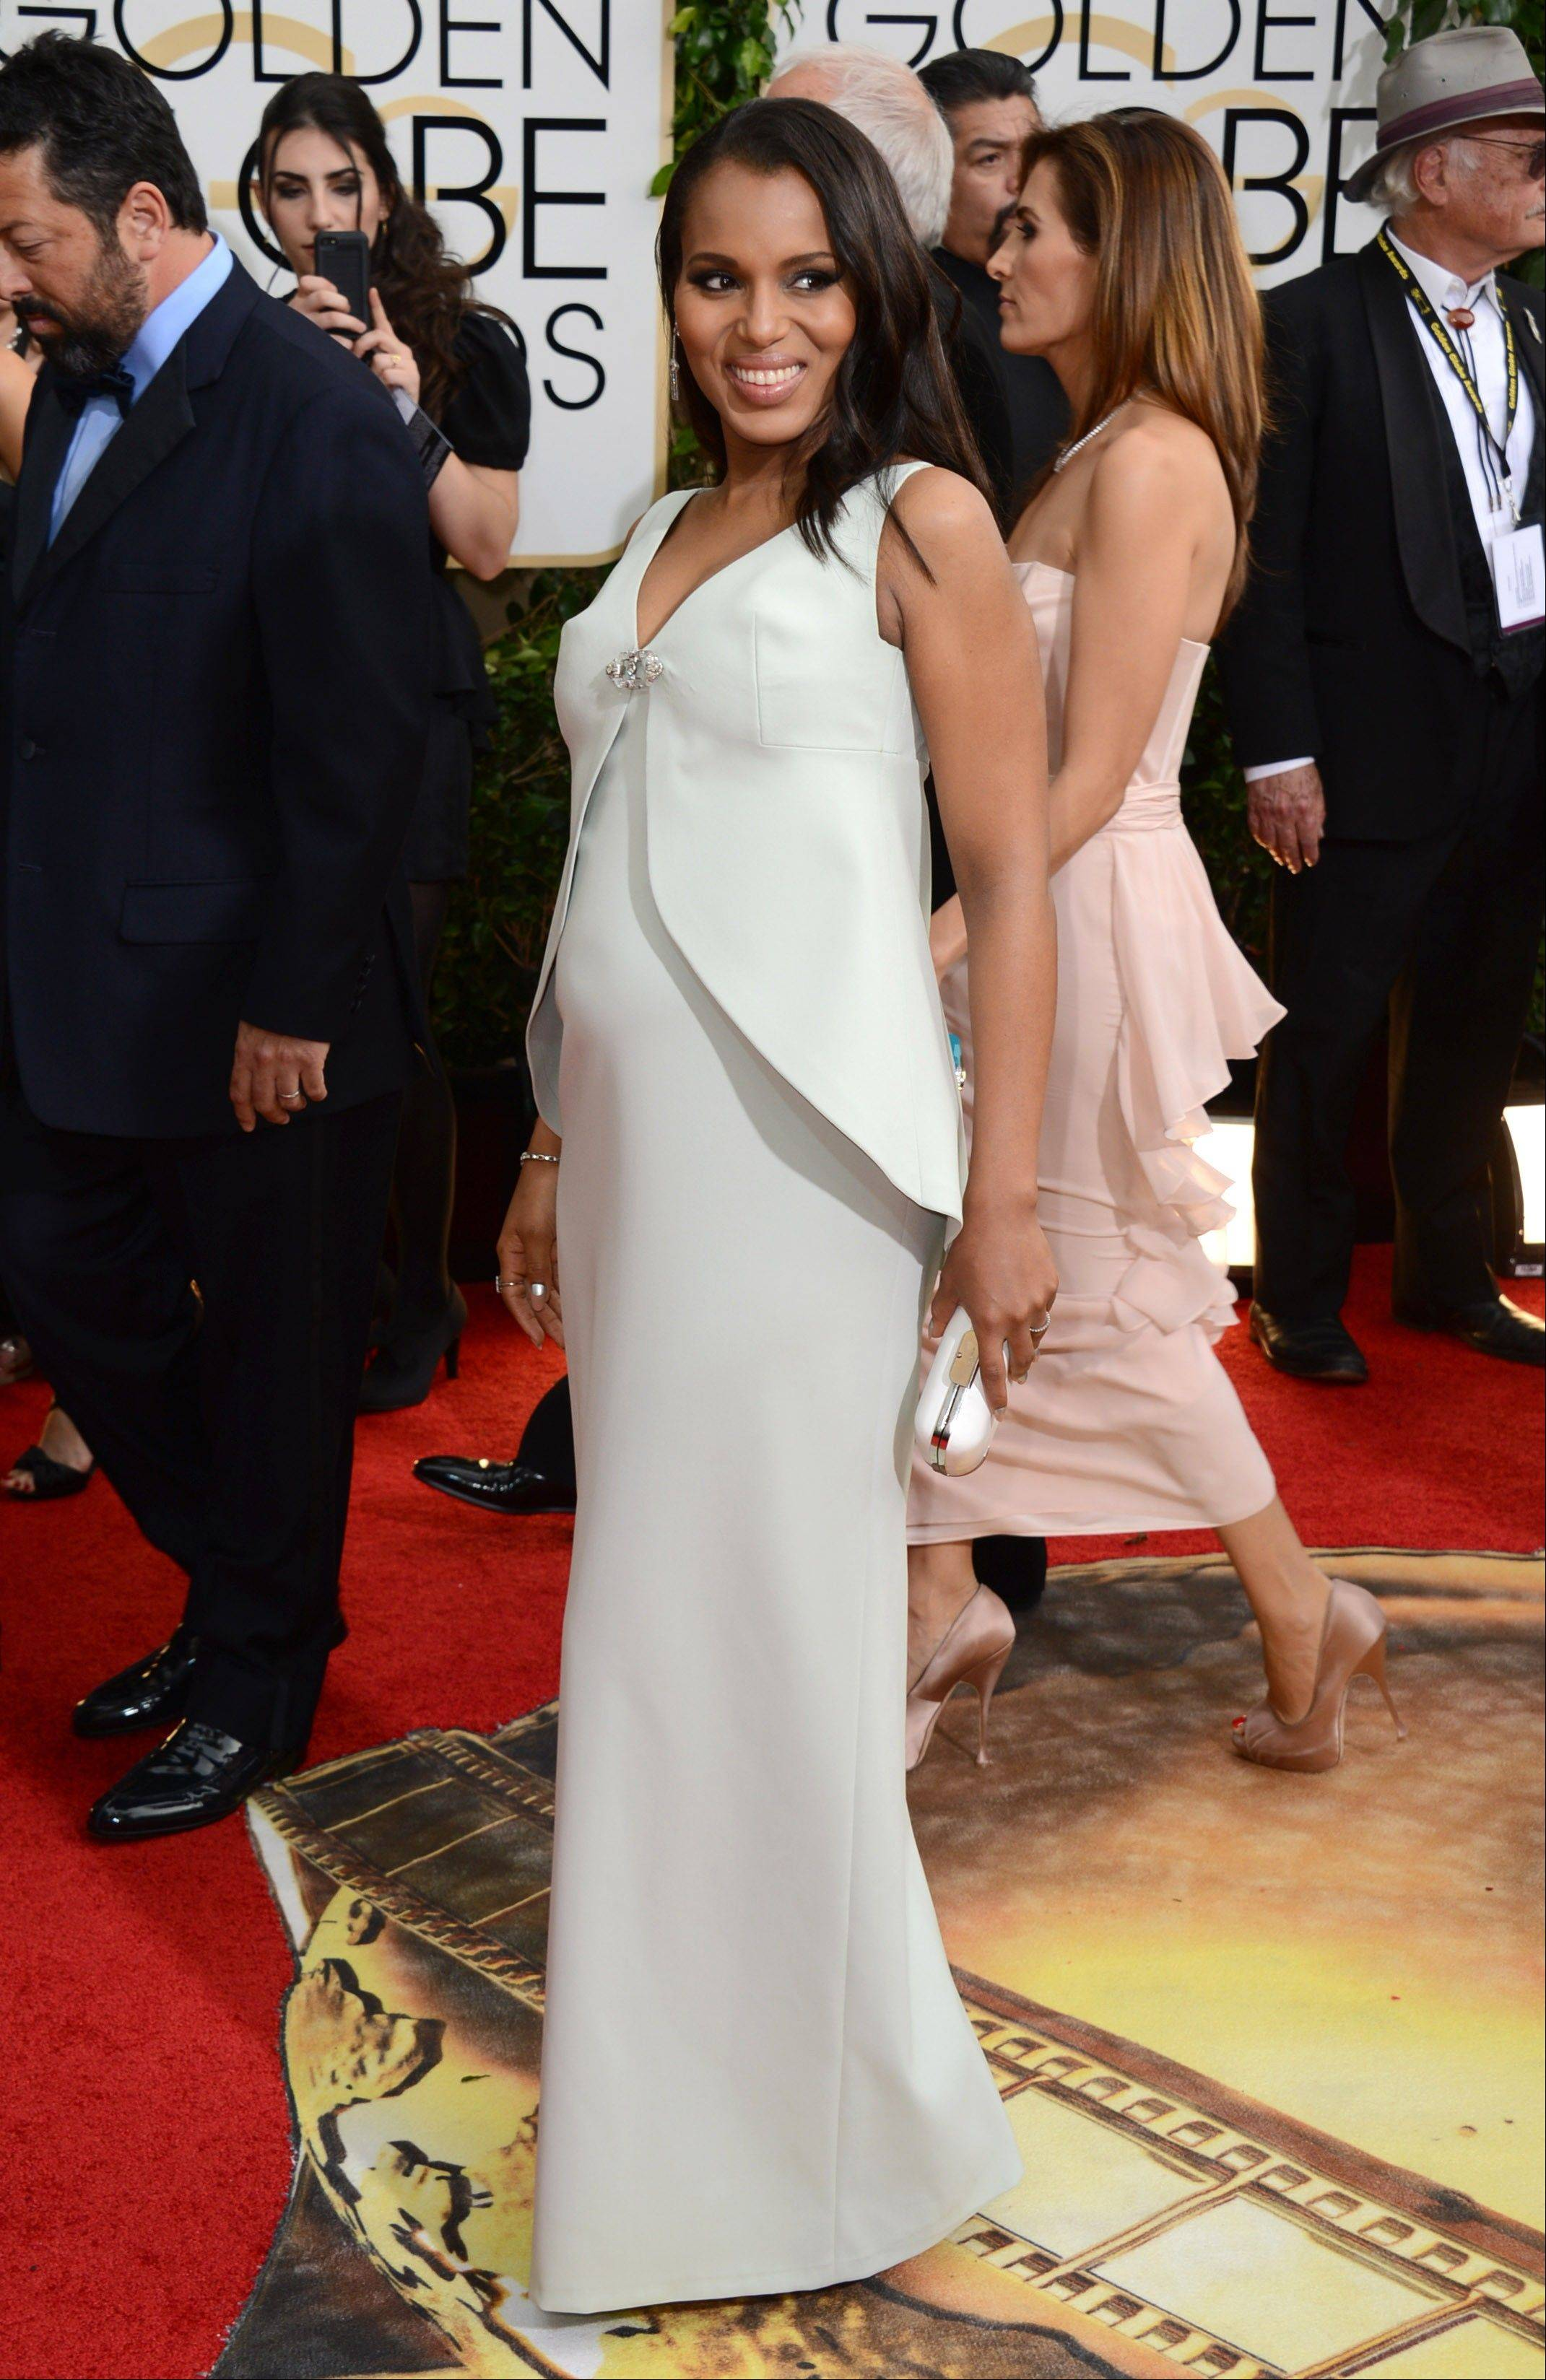 """Scandal"" star Kerry Washington shows off her maternity style at the Golden Globes."